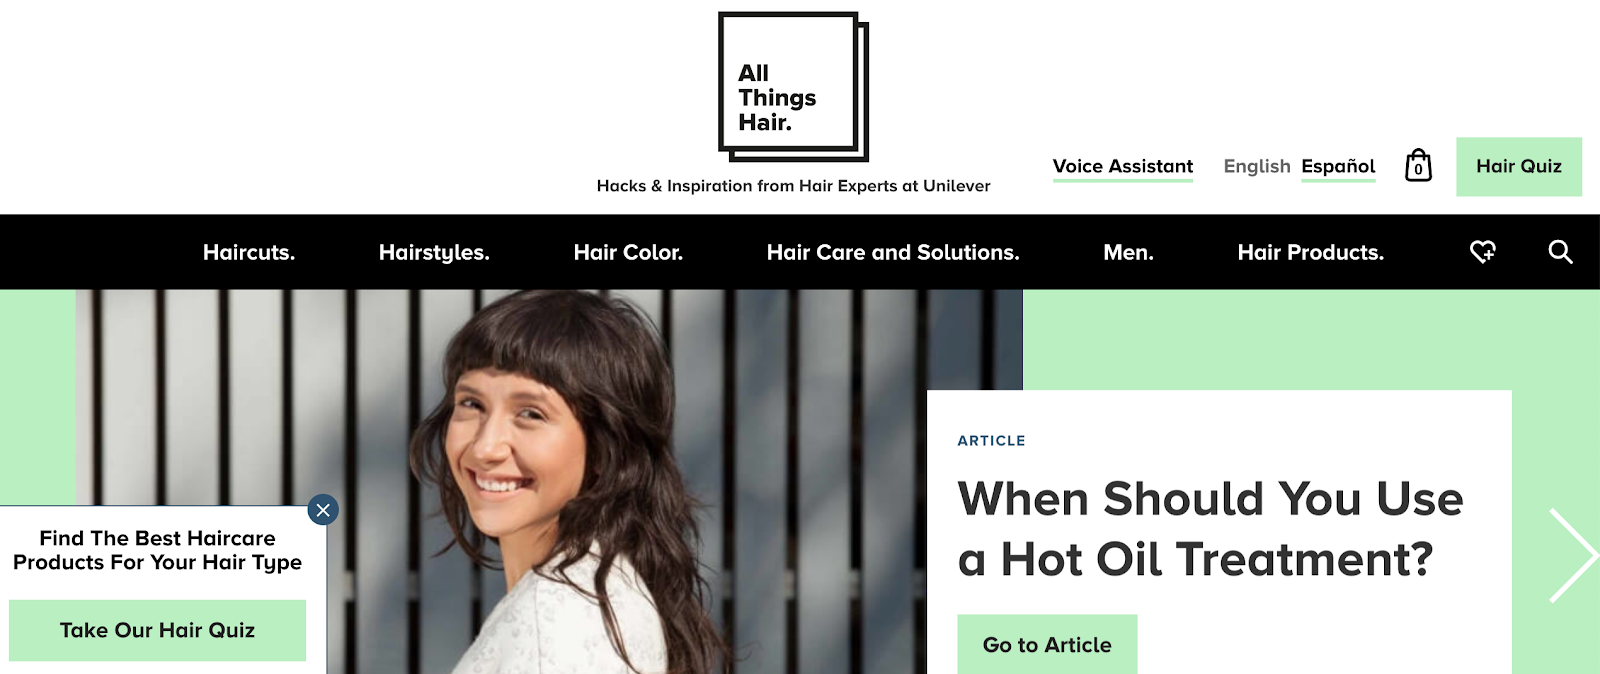 content hub examples